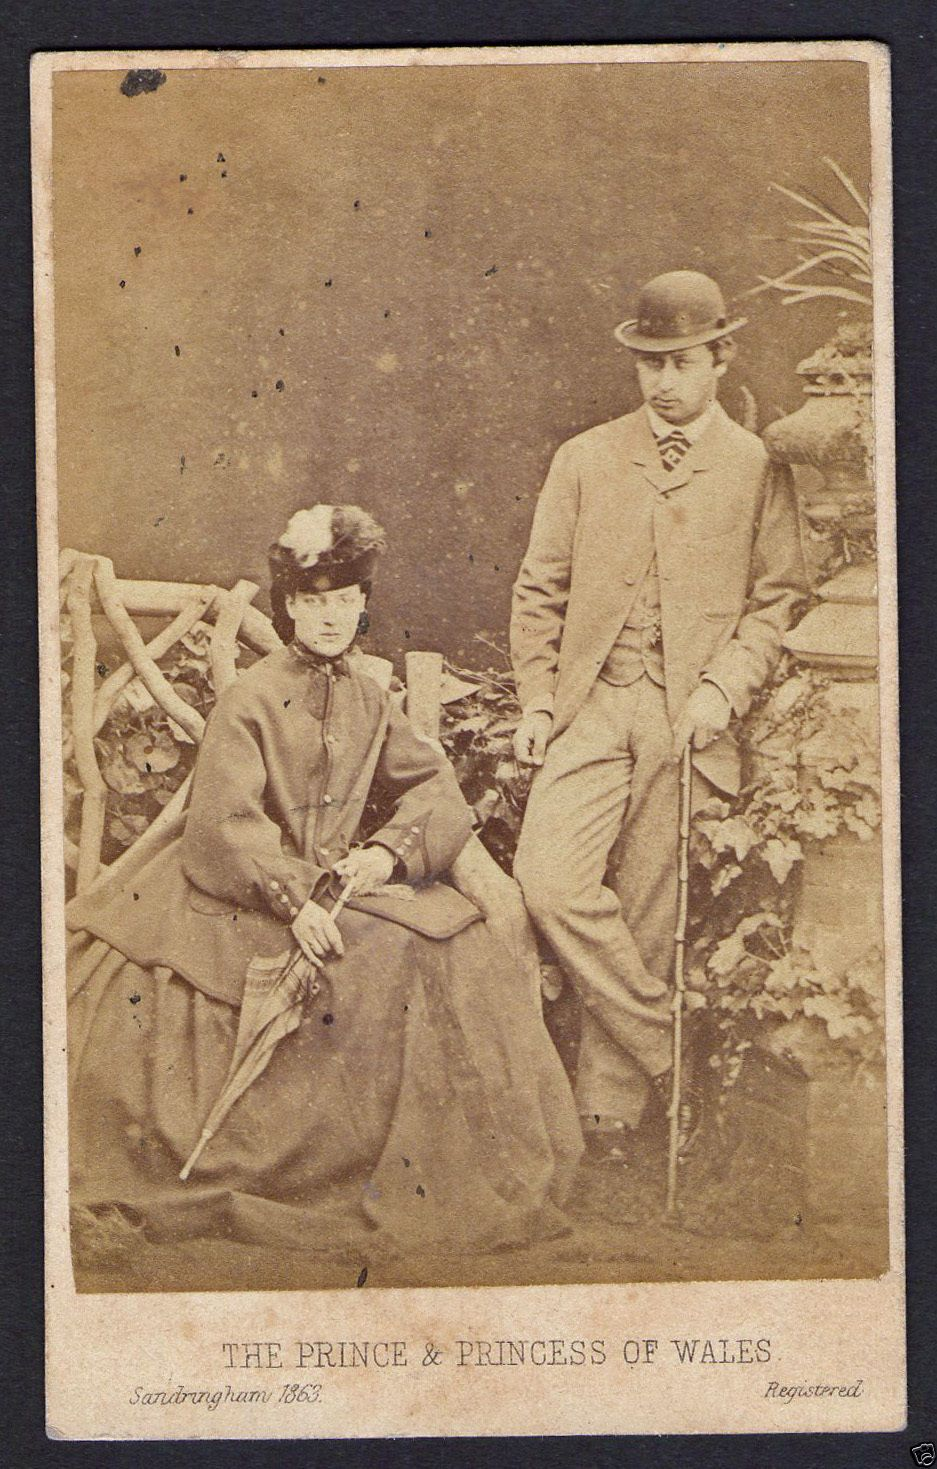 Cabinet Card of the Prince and Princess of Wales